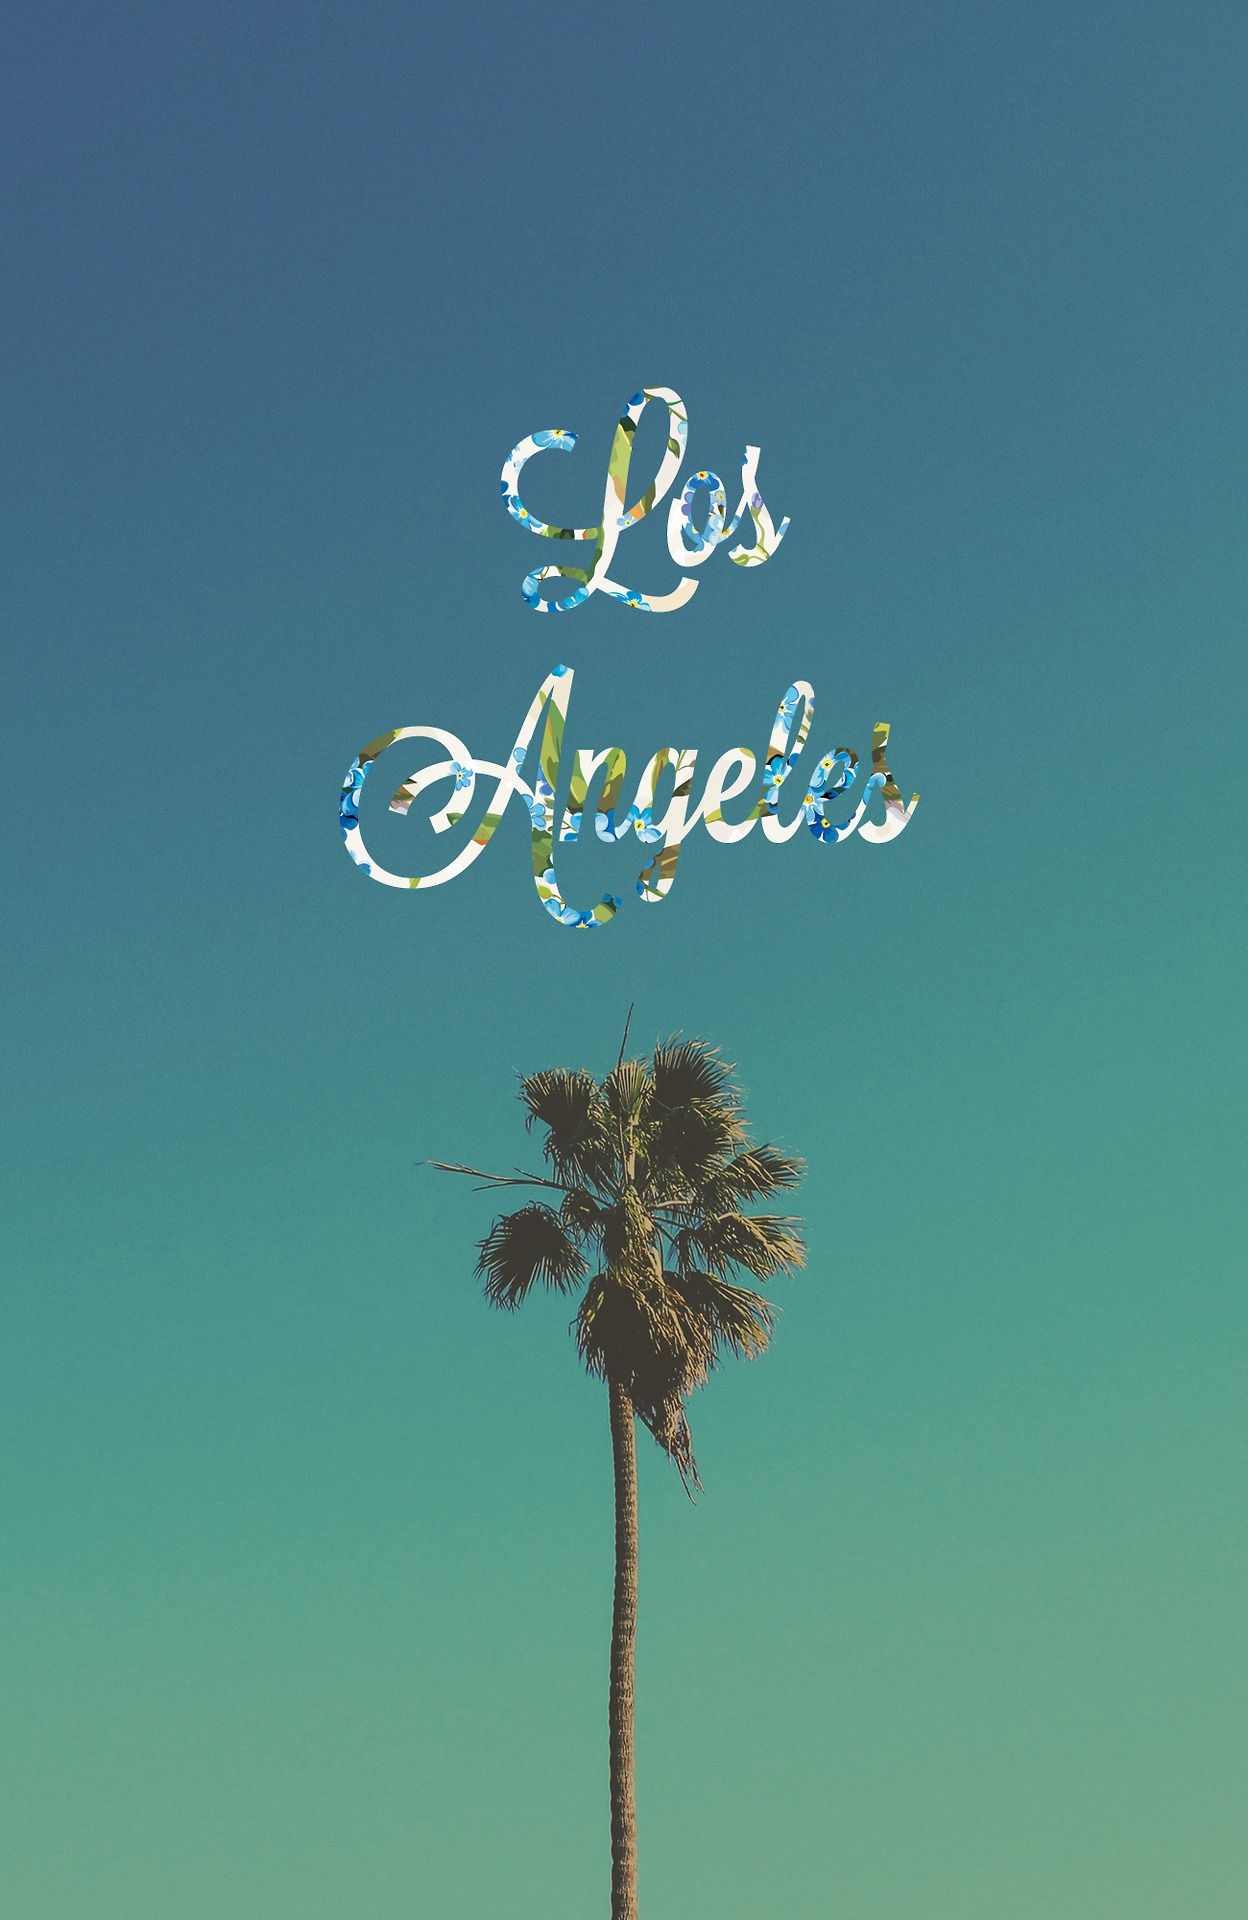 Typography iphone wallpaper tumblr - Typography Design Blue Los Angeles Sun California Floral Palm Tree Vertical Gradient Photographers On Tumblr